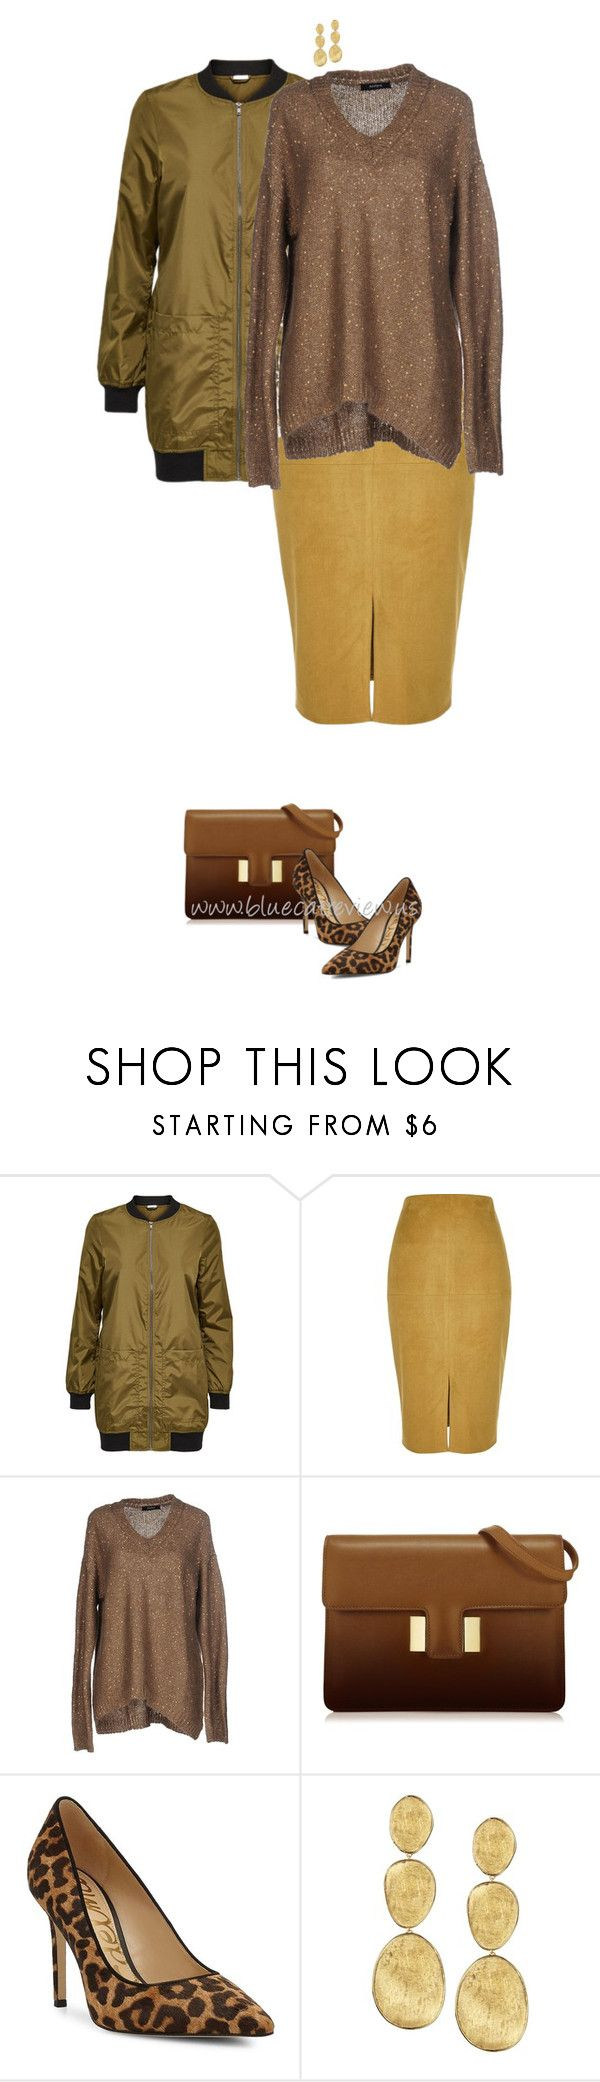 """Golden Autumn 8"" by bluecatreview13 ❤ liked on Polyvore featuring River Island, Alpha Studio, Sam Edelman, Marco Bicego, skirt, bluecatreview, fallcolour, over50styling and longbomberjacket"